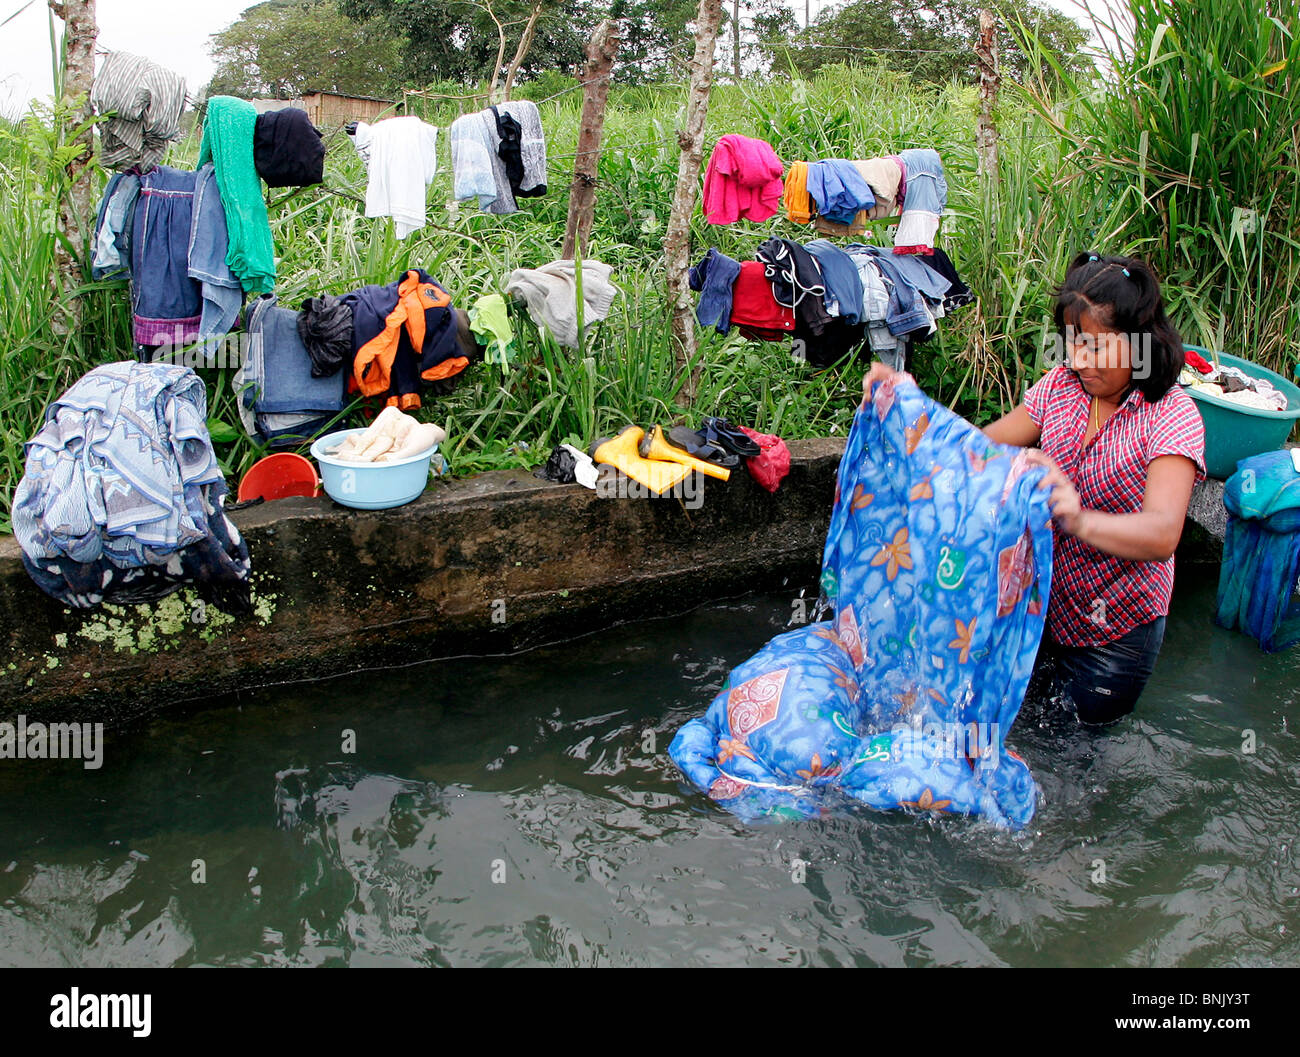 Woman is washing laundry in a small river in Ecuador, South America on Sept. 3, 2005. - Stock Image